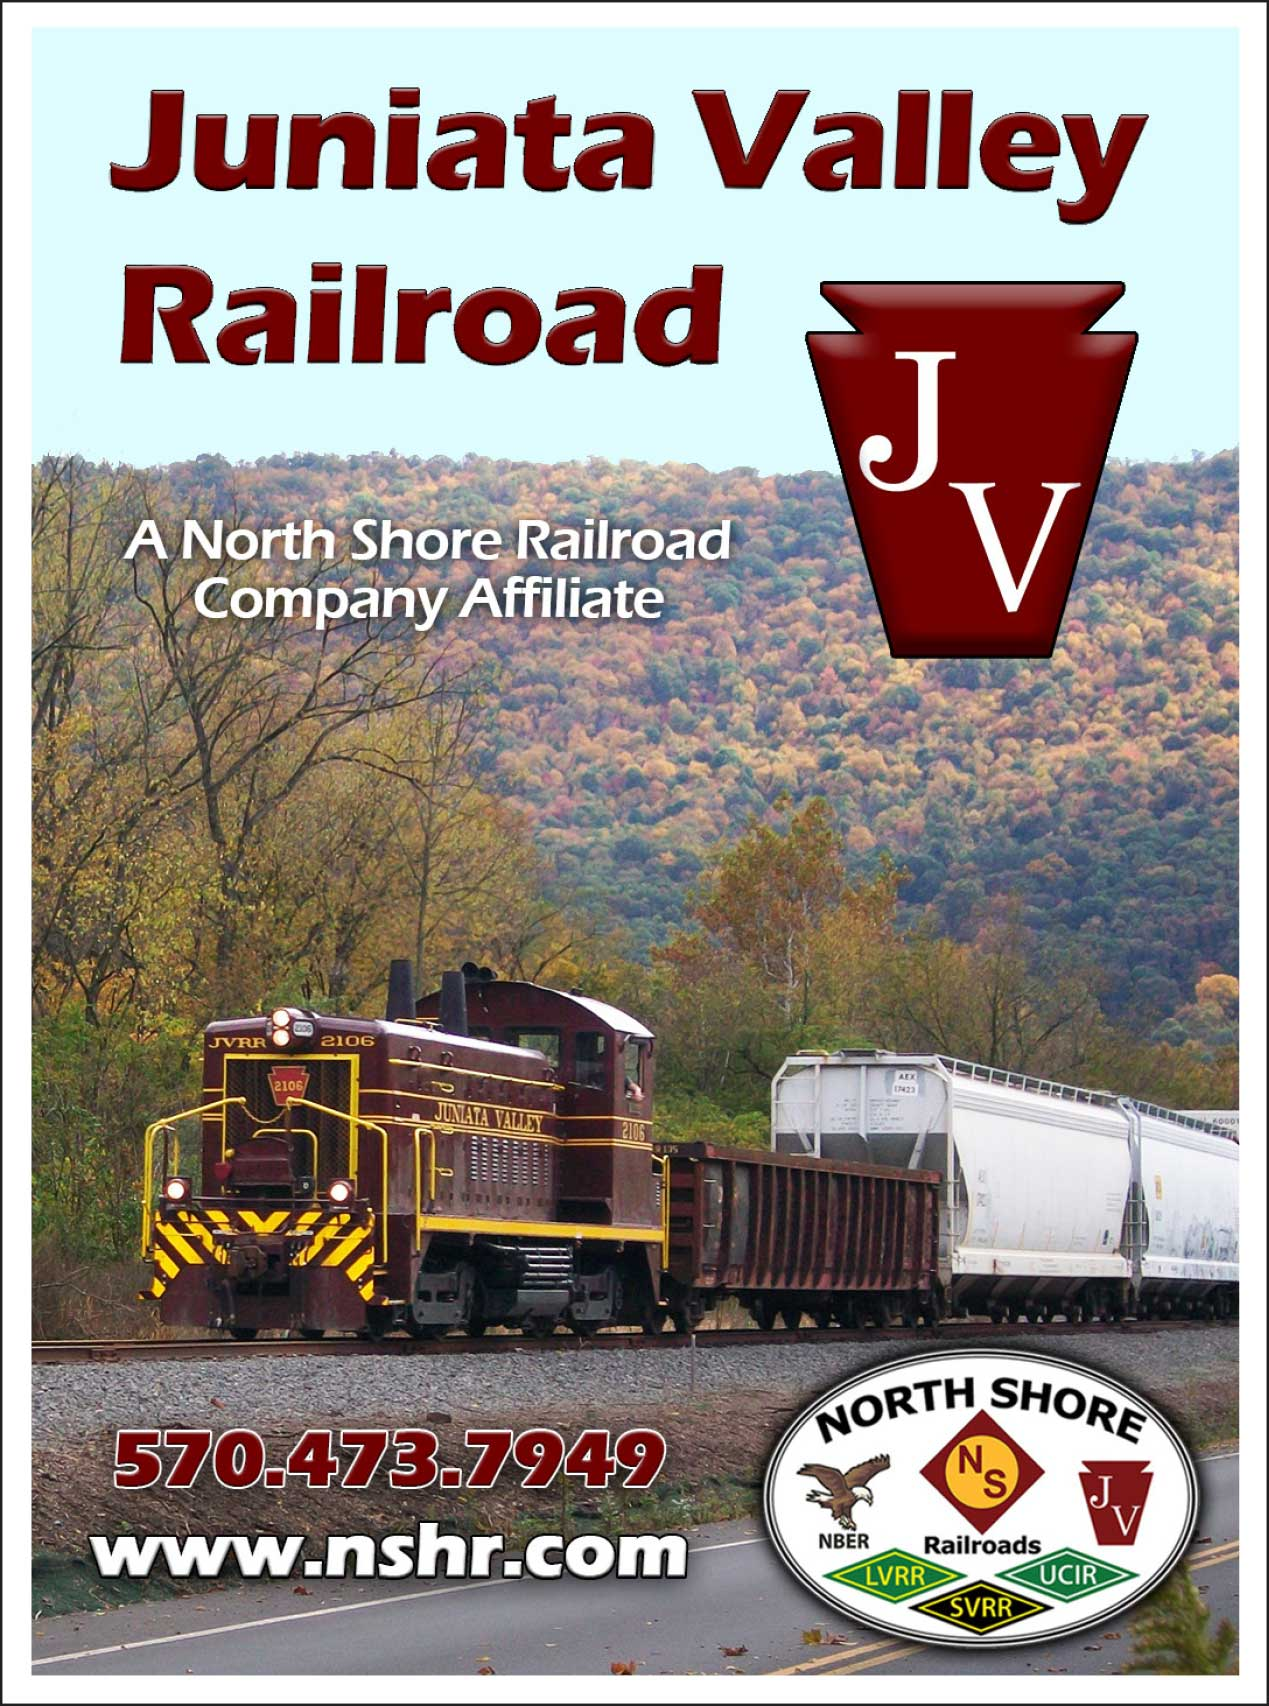 "<center>Juniata Valley Railroad | <b><a href=""http://www.nshr.com"" target=""_blank"" rel=""noopener noreferrer"">CLICK HERE to view the website</a></b></center>"